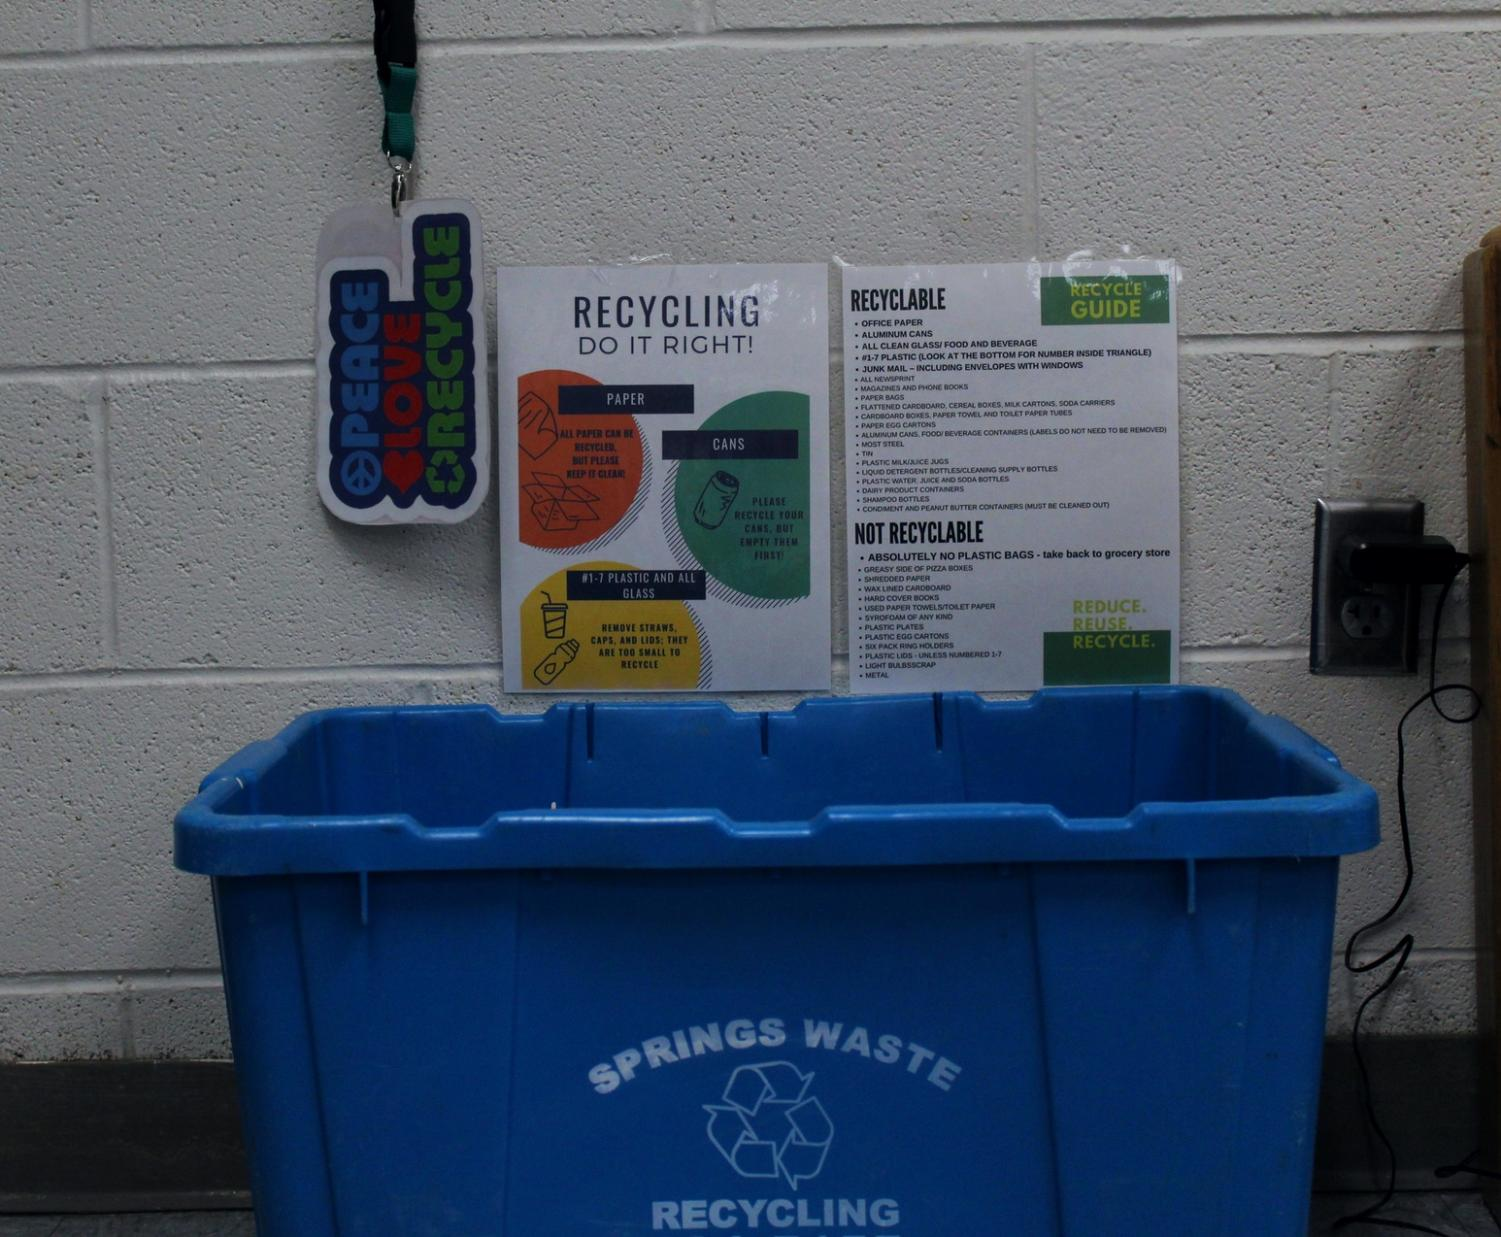 The new recycling bins are equipped with infographics to inform students and staff about how to properly recycle. They also have passes for the students who volunteer to collect recycling.